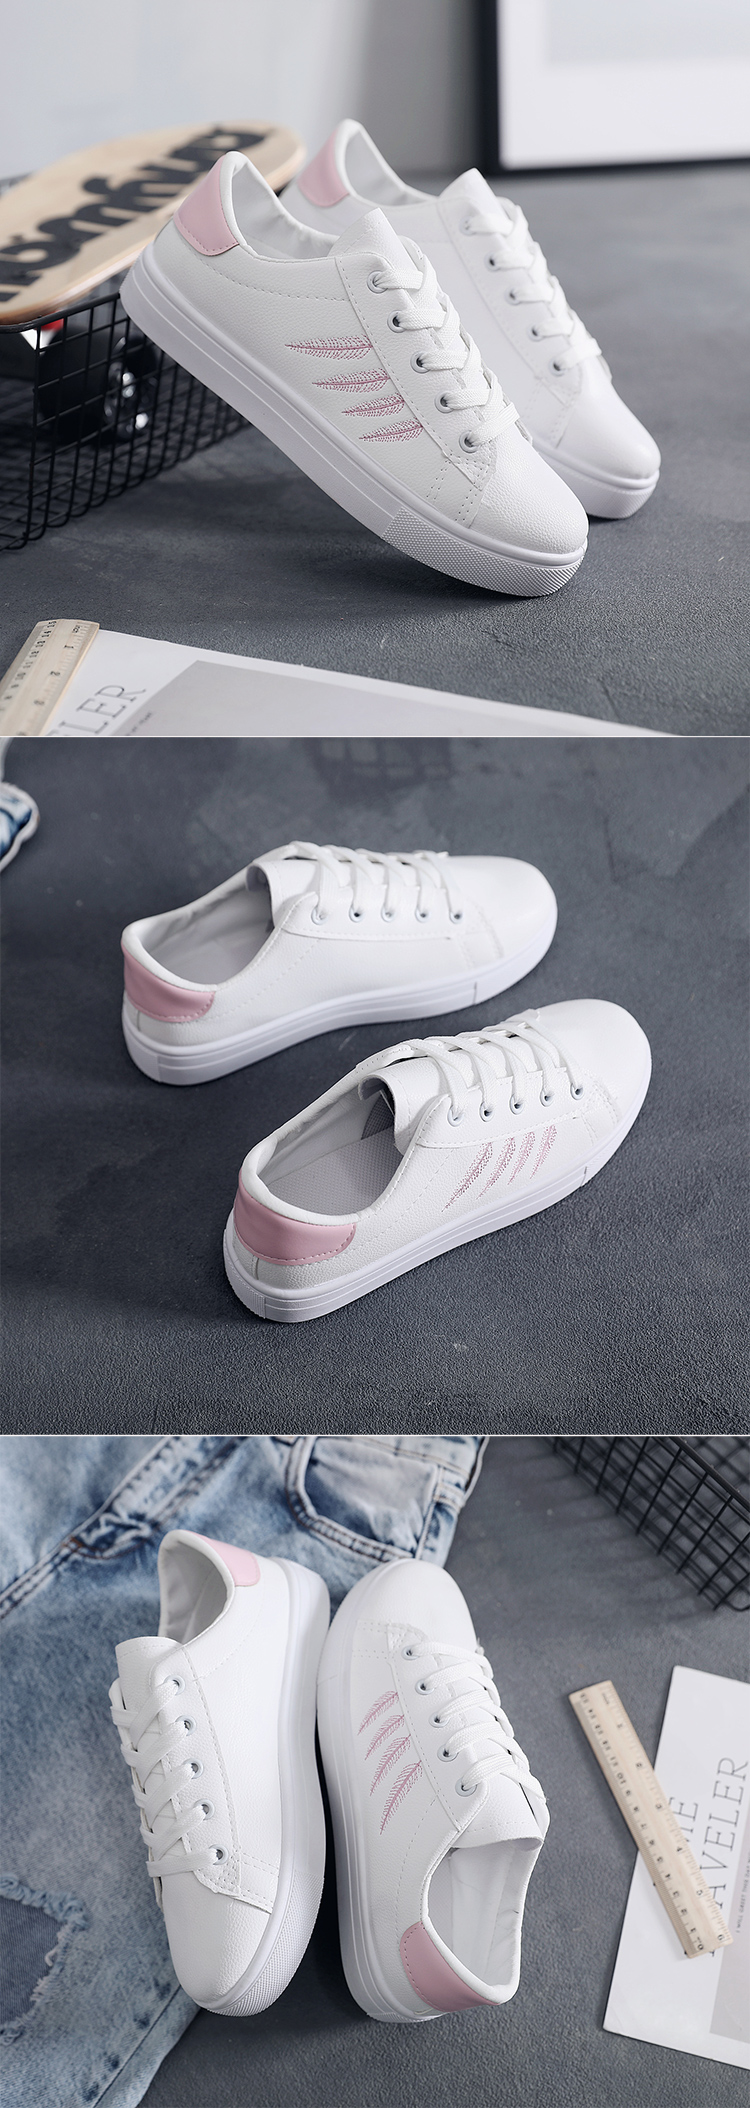 2019 Wholesale women flat ladys loafers leather ladies shoes